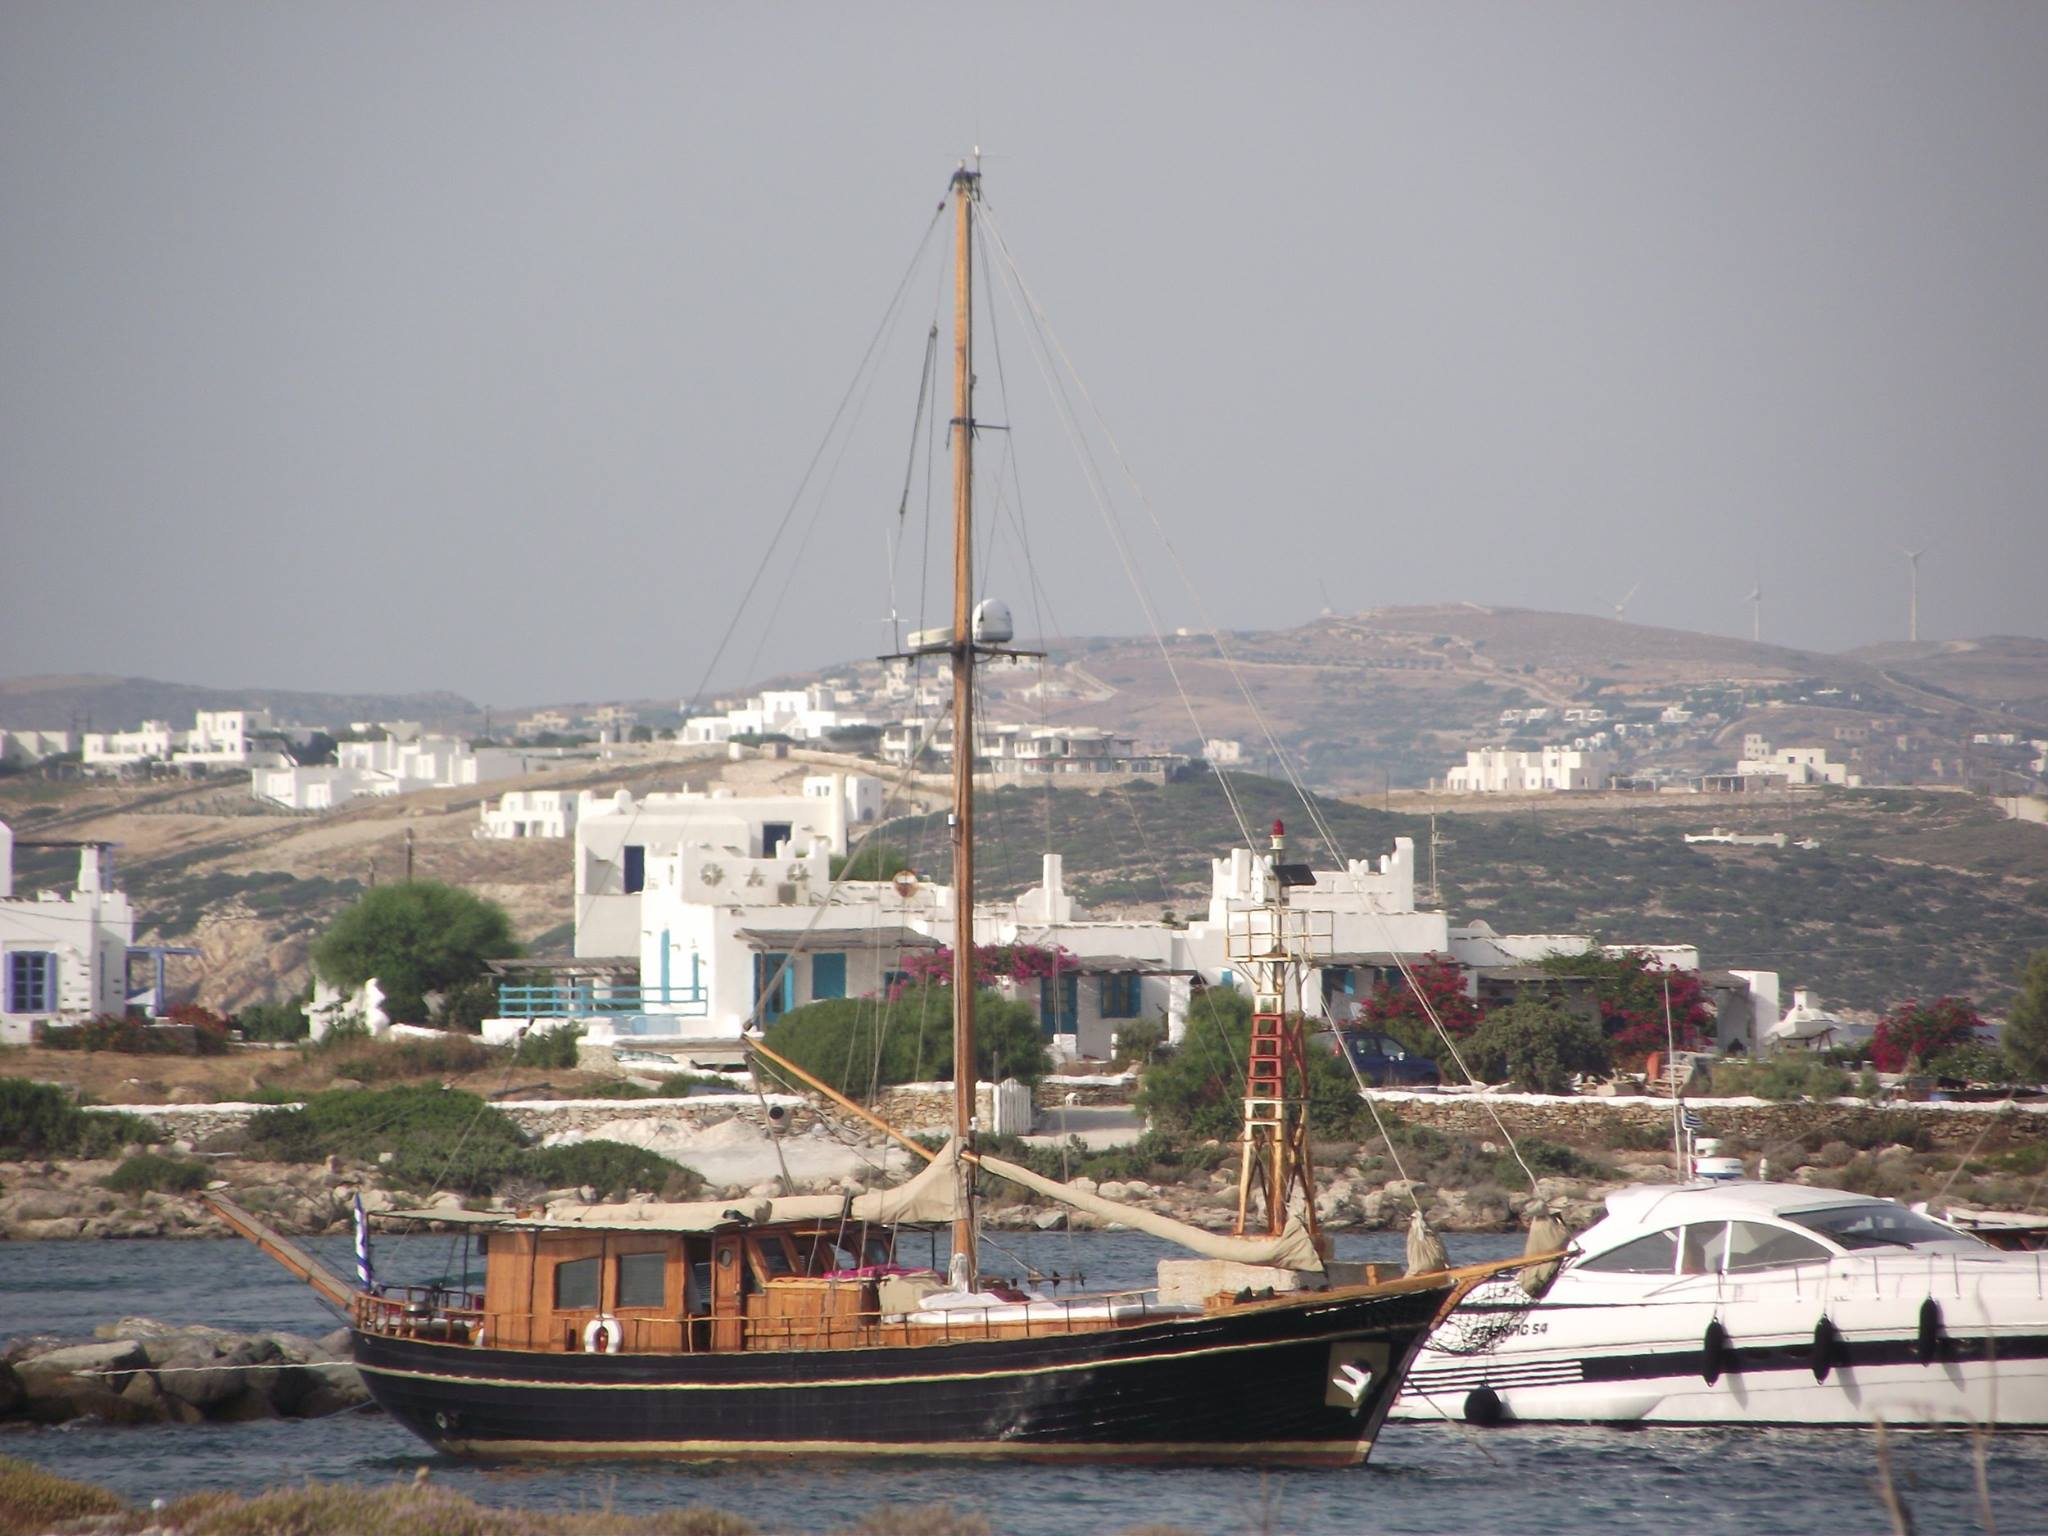 Parikia_harbour_in_the_island_of_Paros_photo_by_Julia_Marmotti